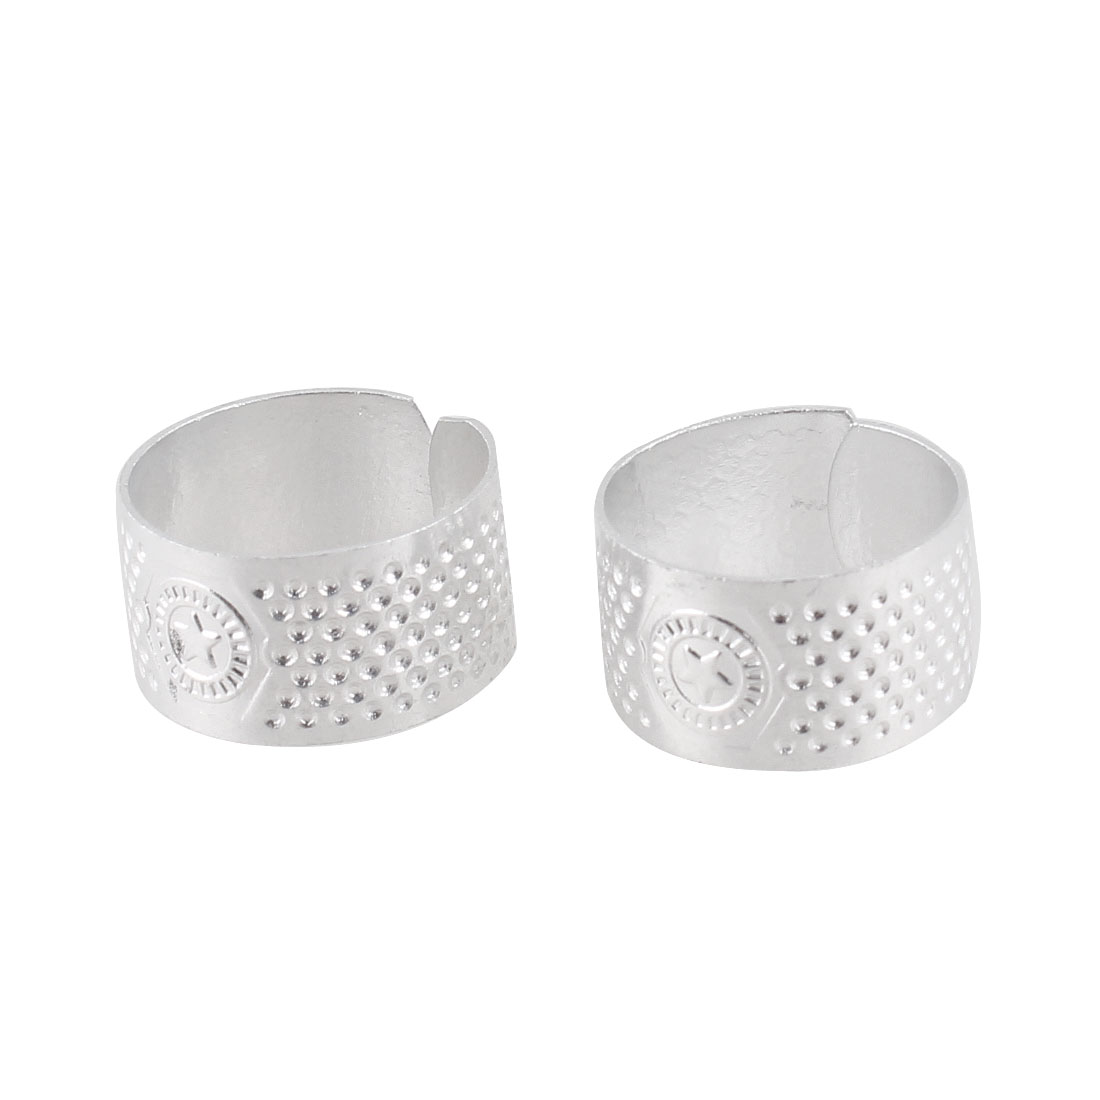 Tailors Sewing Reeded Texturing Ring Shaped Silver Tone Metal Thimble 2 Pcs